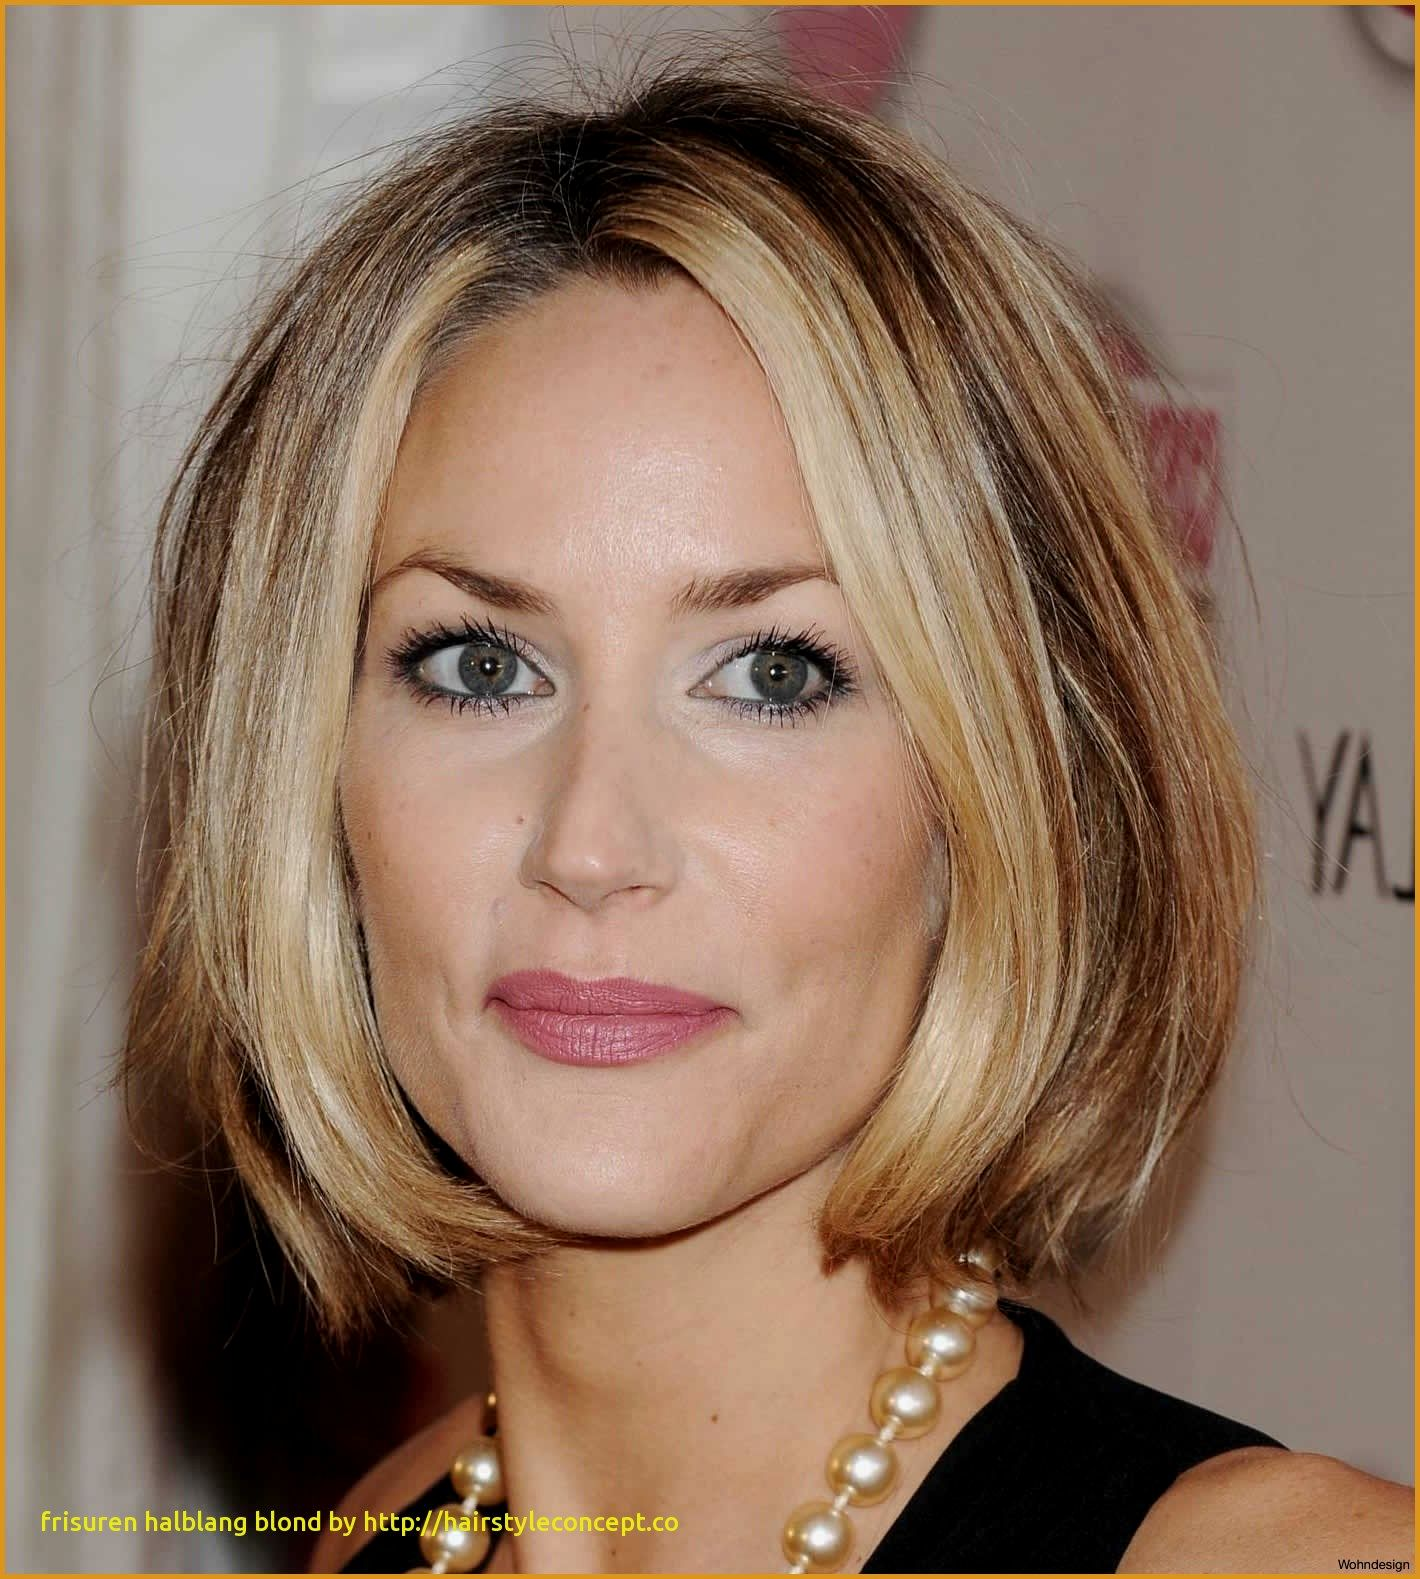 best of hairstyles 2018 half length plan-Cute hairstyles 2018 half-length inspiration